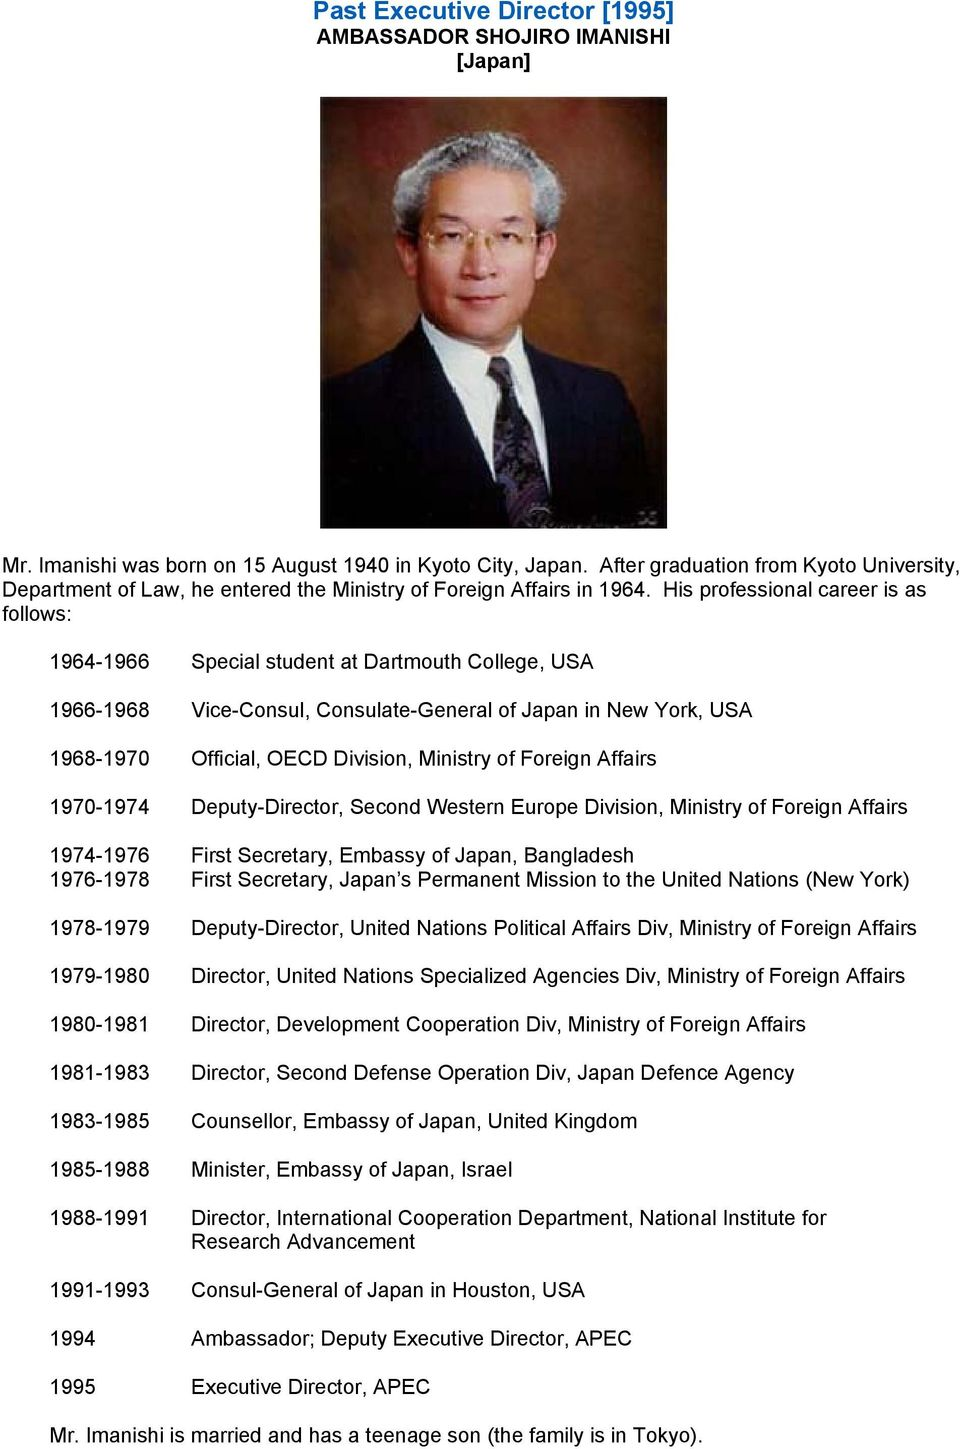 His professional career is as follows: 1964-1966 Special student at Dartmouth College, USA 1966-1968 Vice-Consul, Consulate-General of Japan in New York, USA 1968-1970 Official, OECD Division,